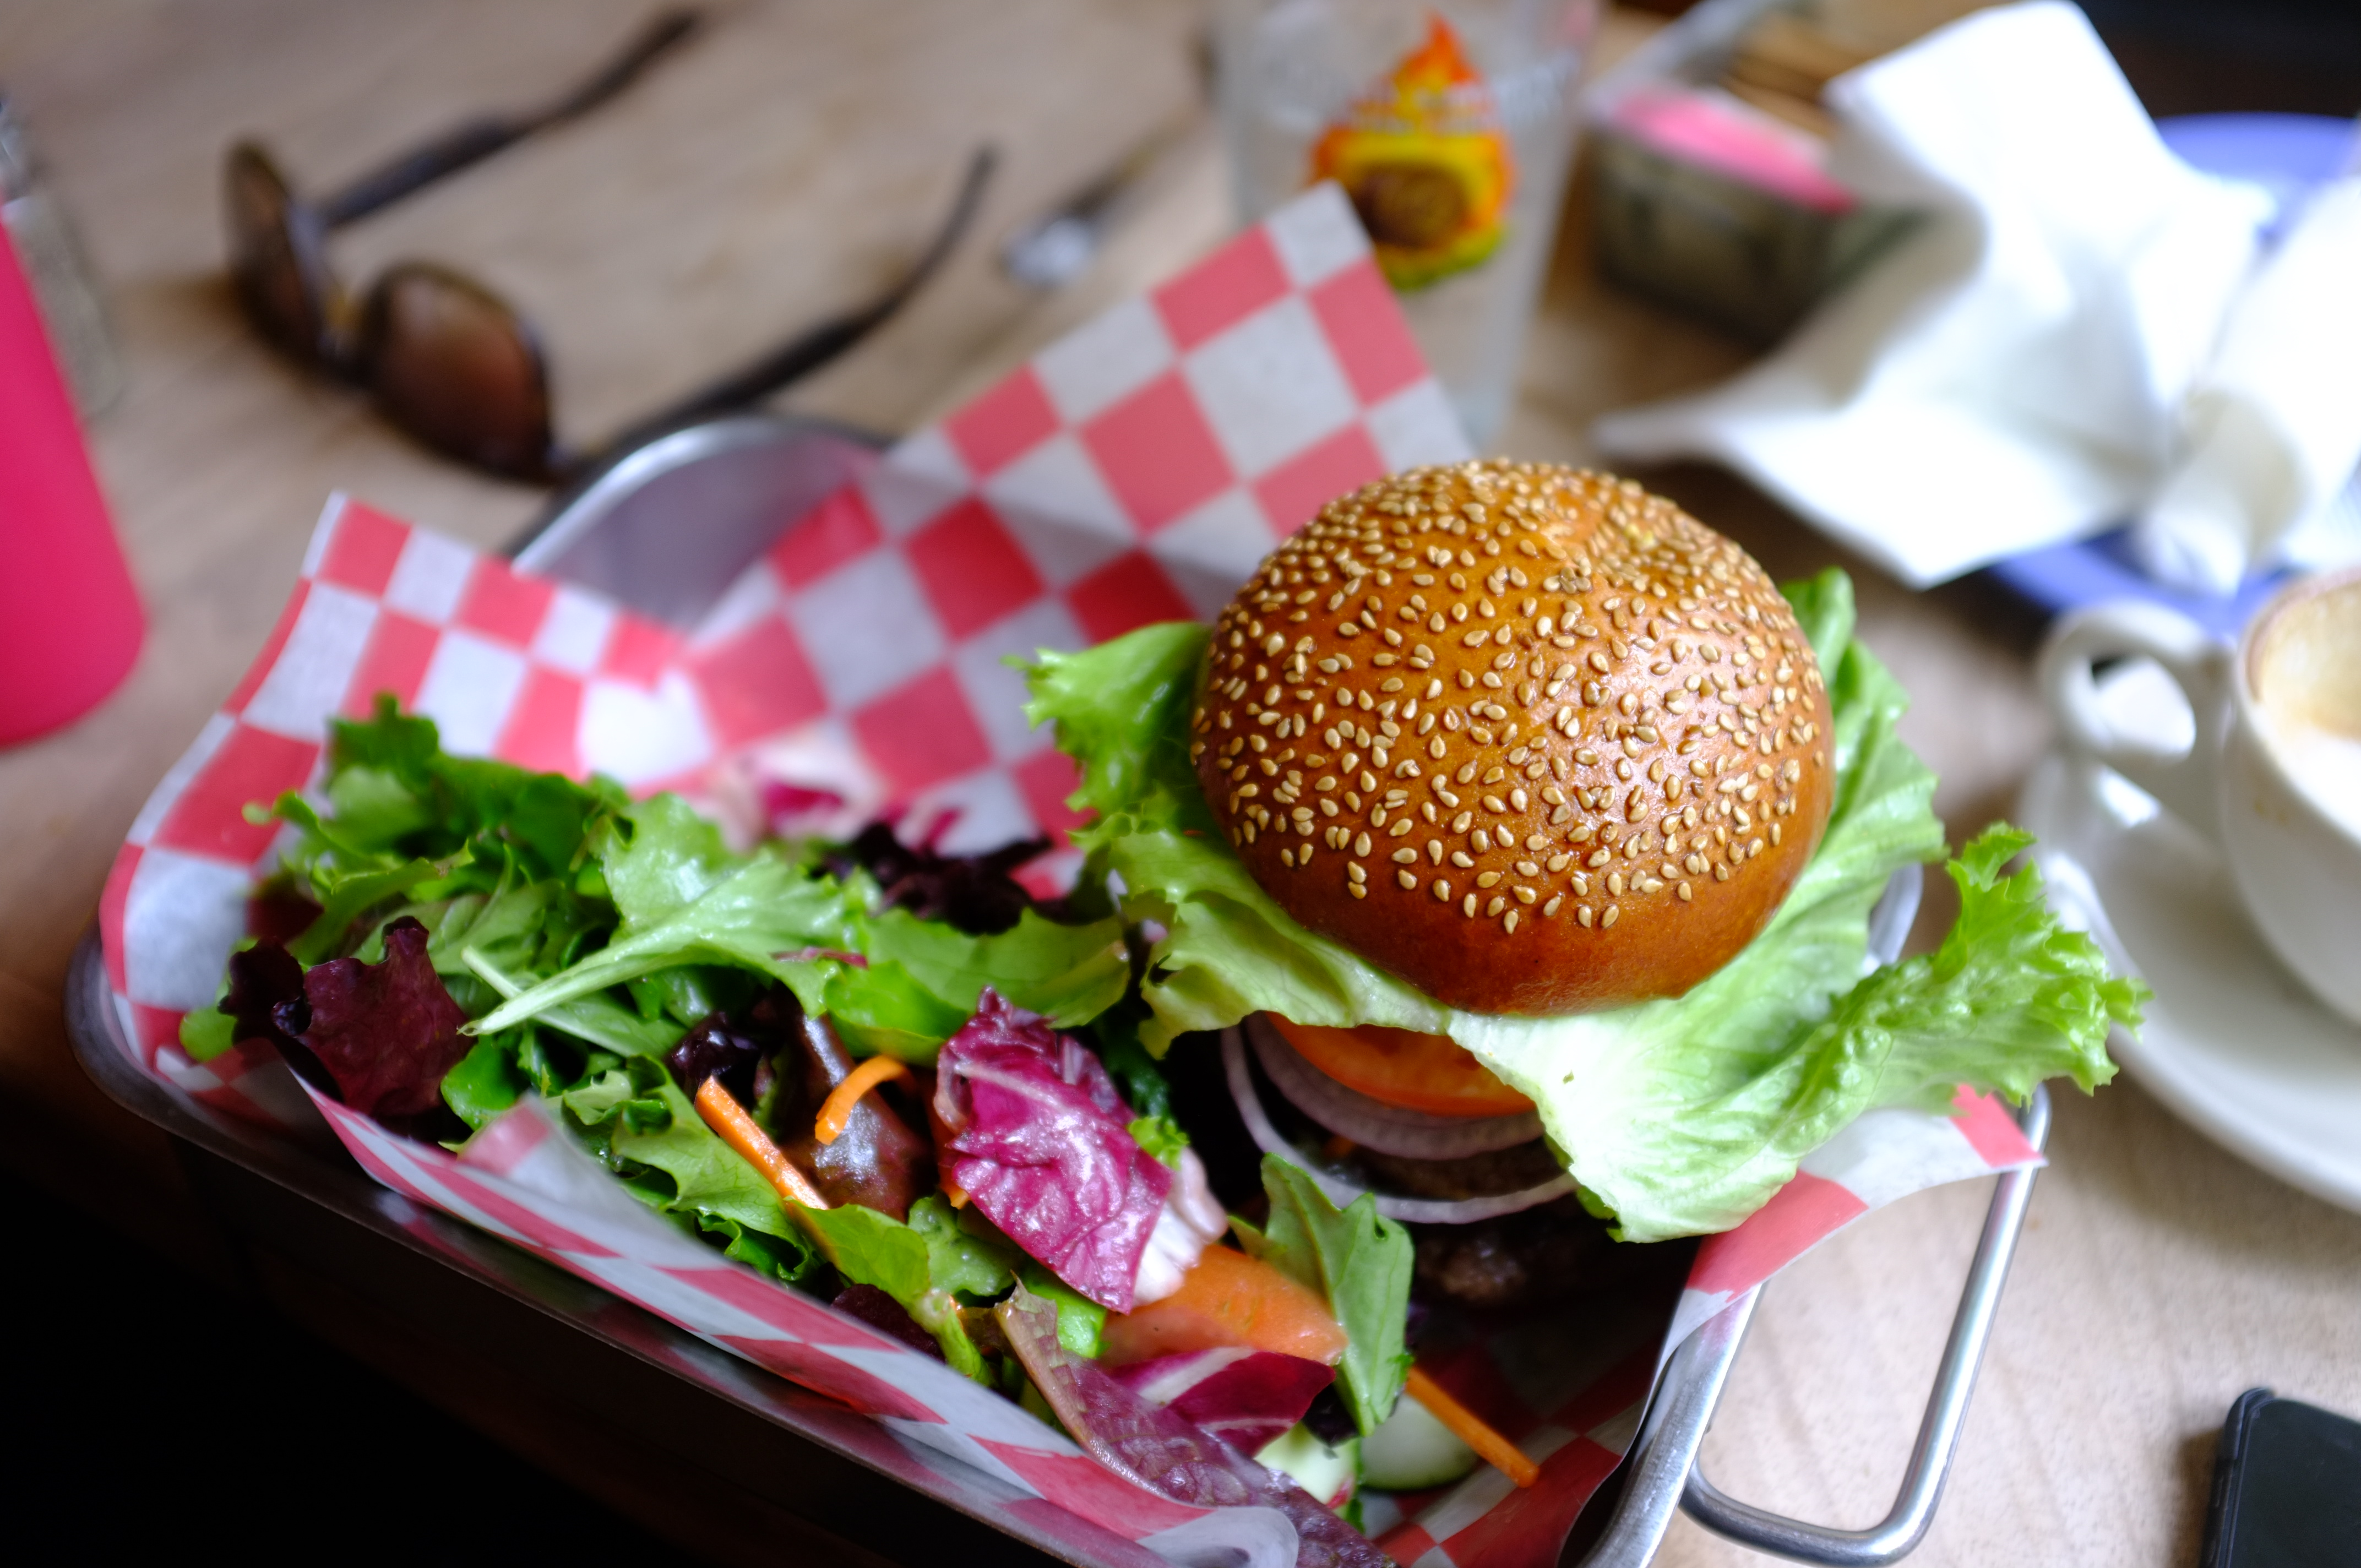 File:Burger and a Salad (Unsplash).jpg - Wikimedia Commons